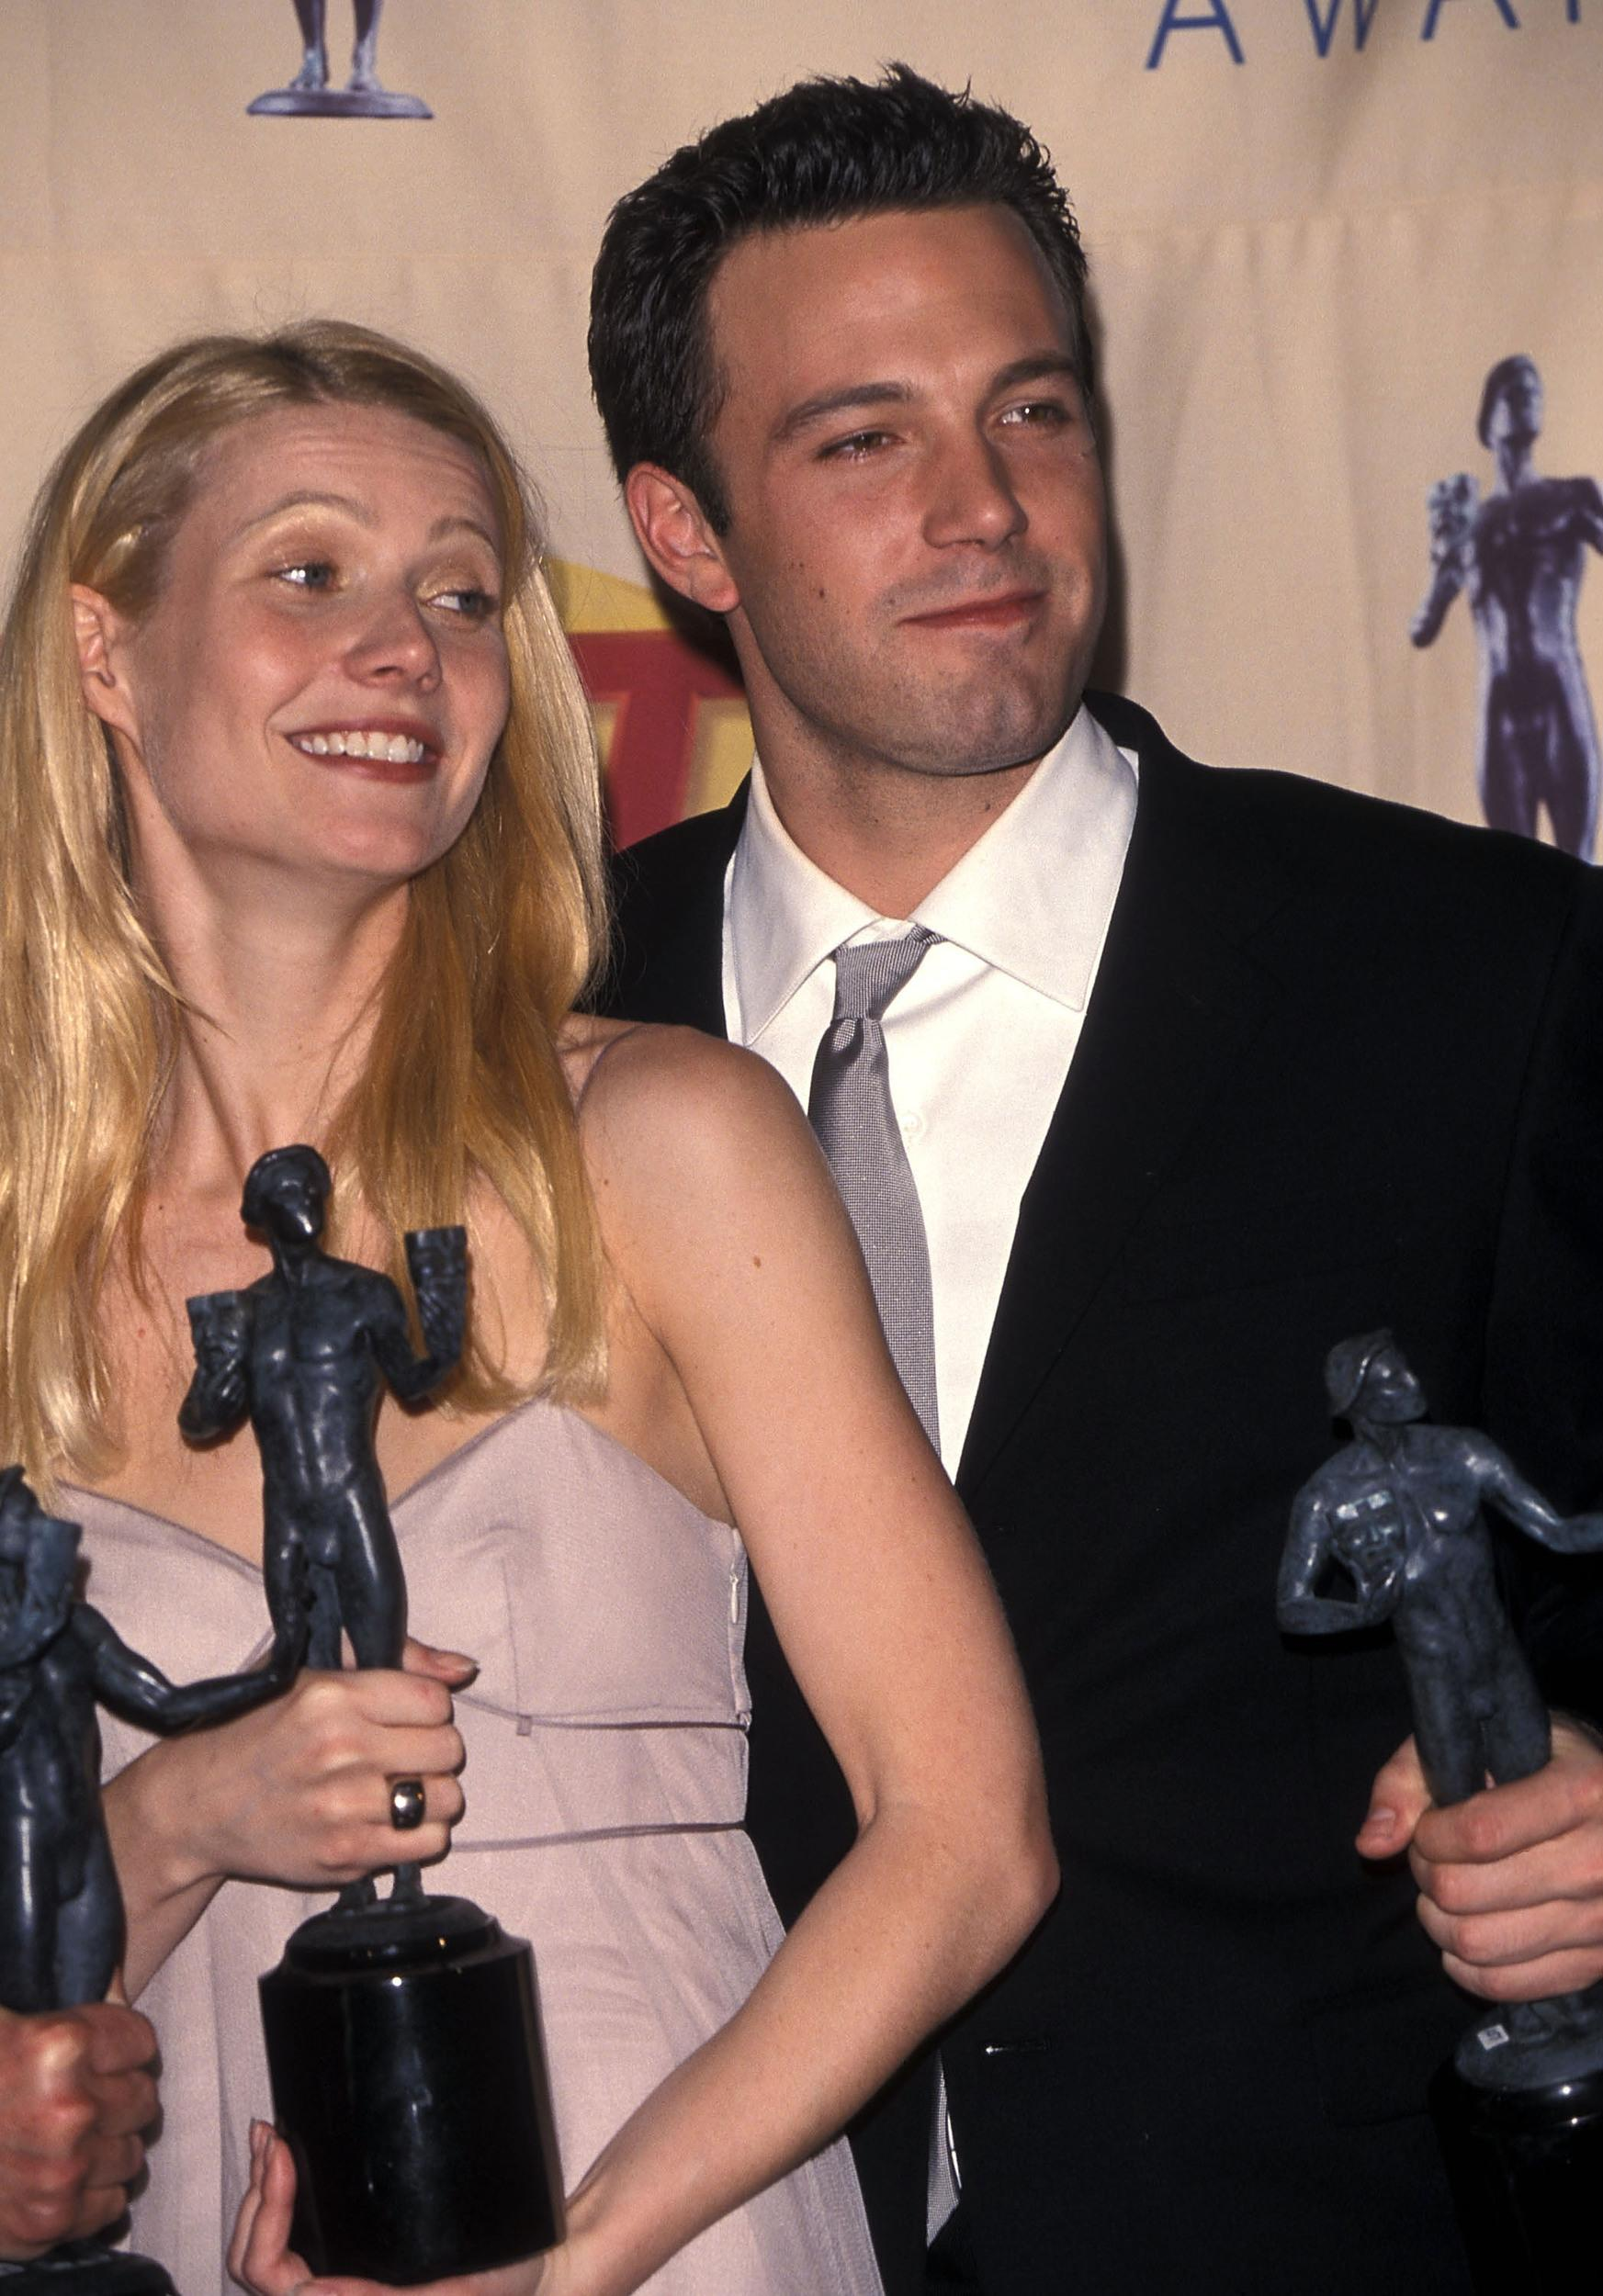 Actress Gwyneth Paltrow and actor Ben Affleck attend the Fifth Annual Screen Actors Guild Awards on March 7, 1999 at the Shrine Auditorium in Los Angeles, California. (Photo by Ron Galella, Ltd./WireImage)